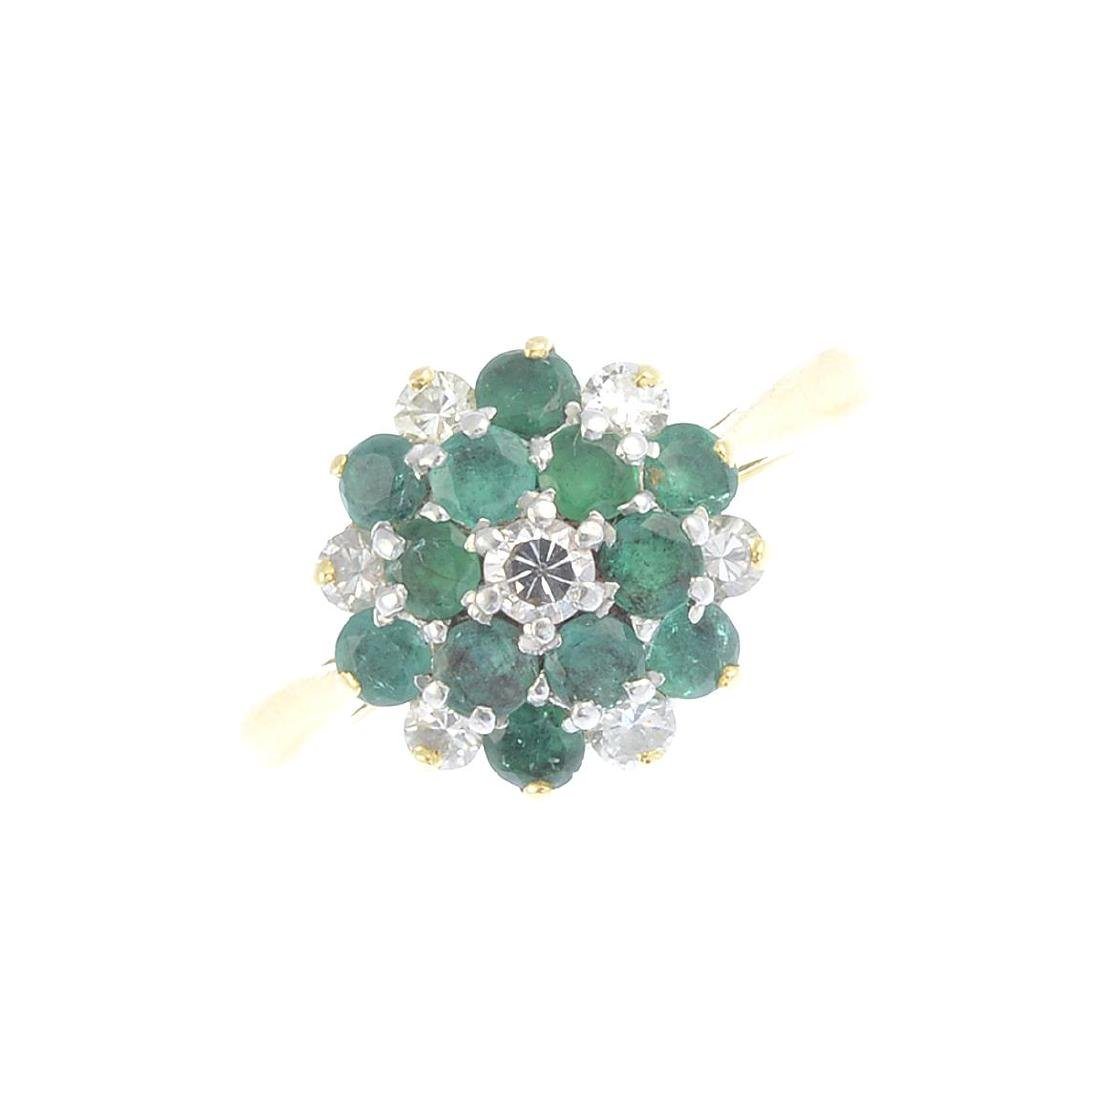 A 1960s 18ct gold emerald and diamond ring. Designed as